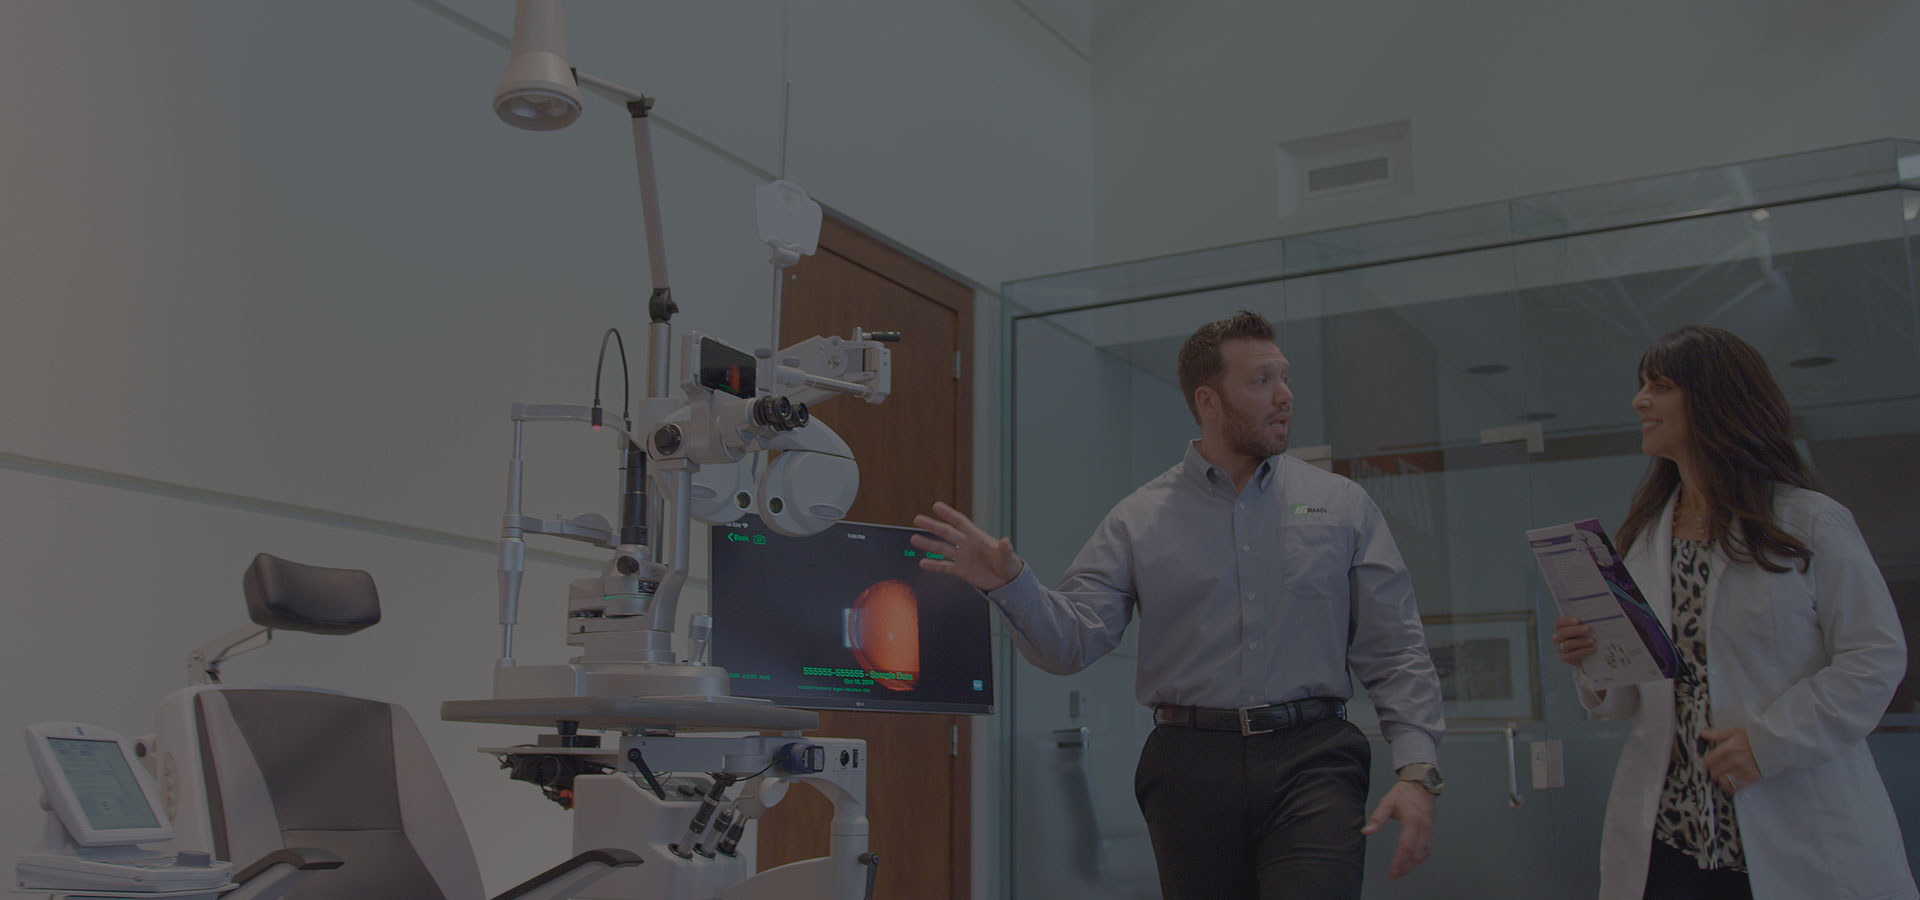 Home » Marco Ophthalmic » The Leader In Vision Diagnostics